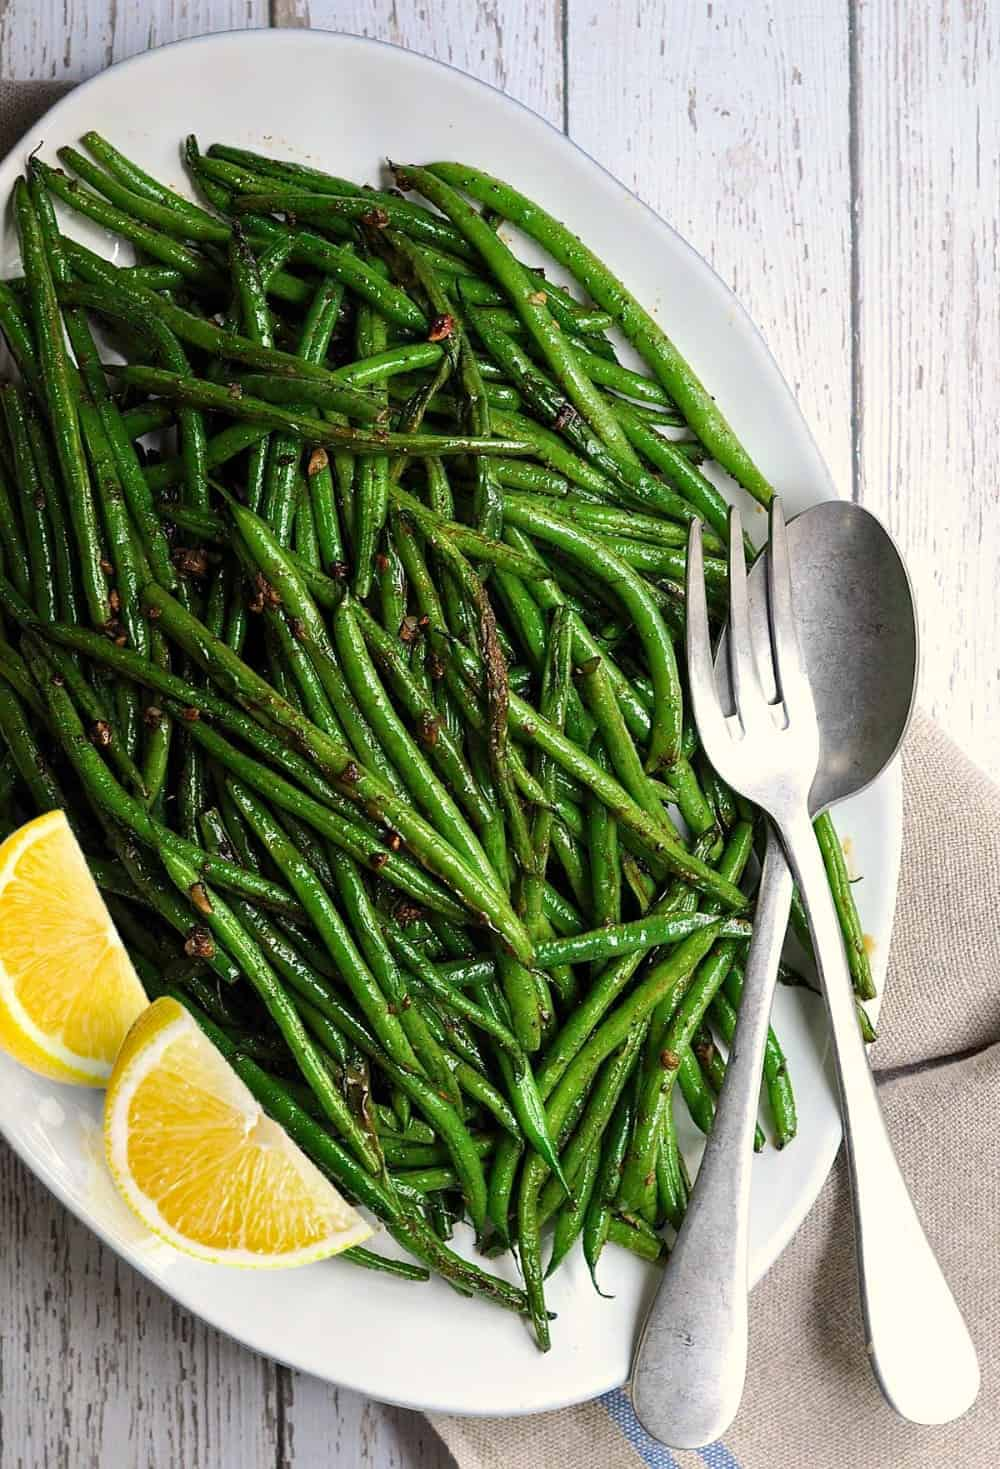 Grilled Green Beans with Lemon Wedges